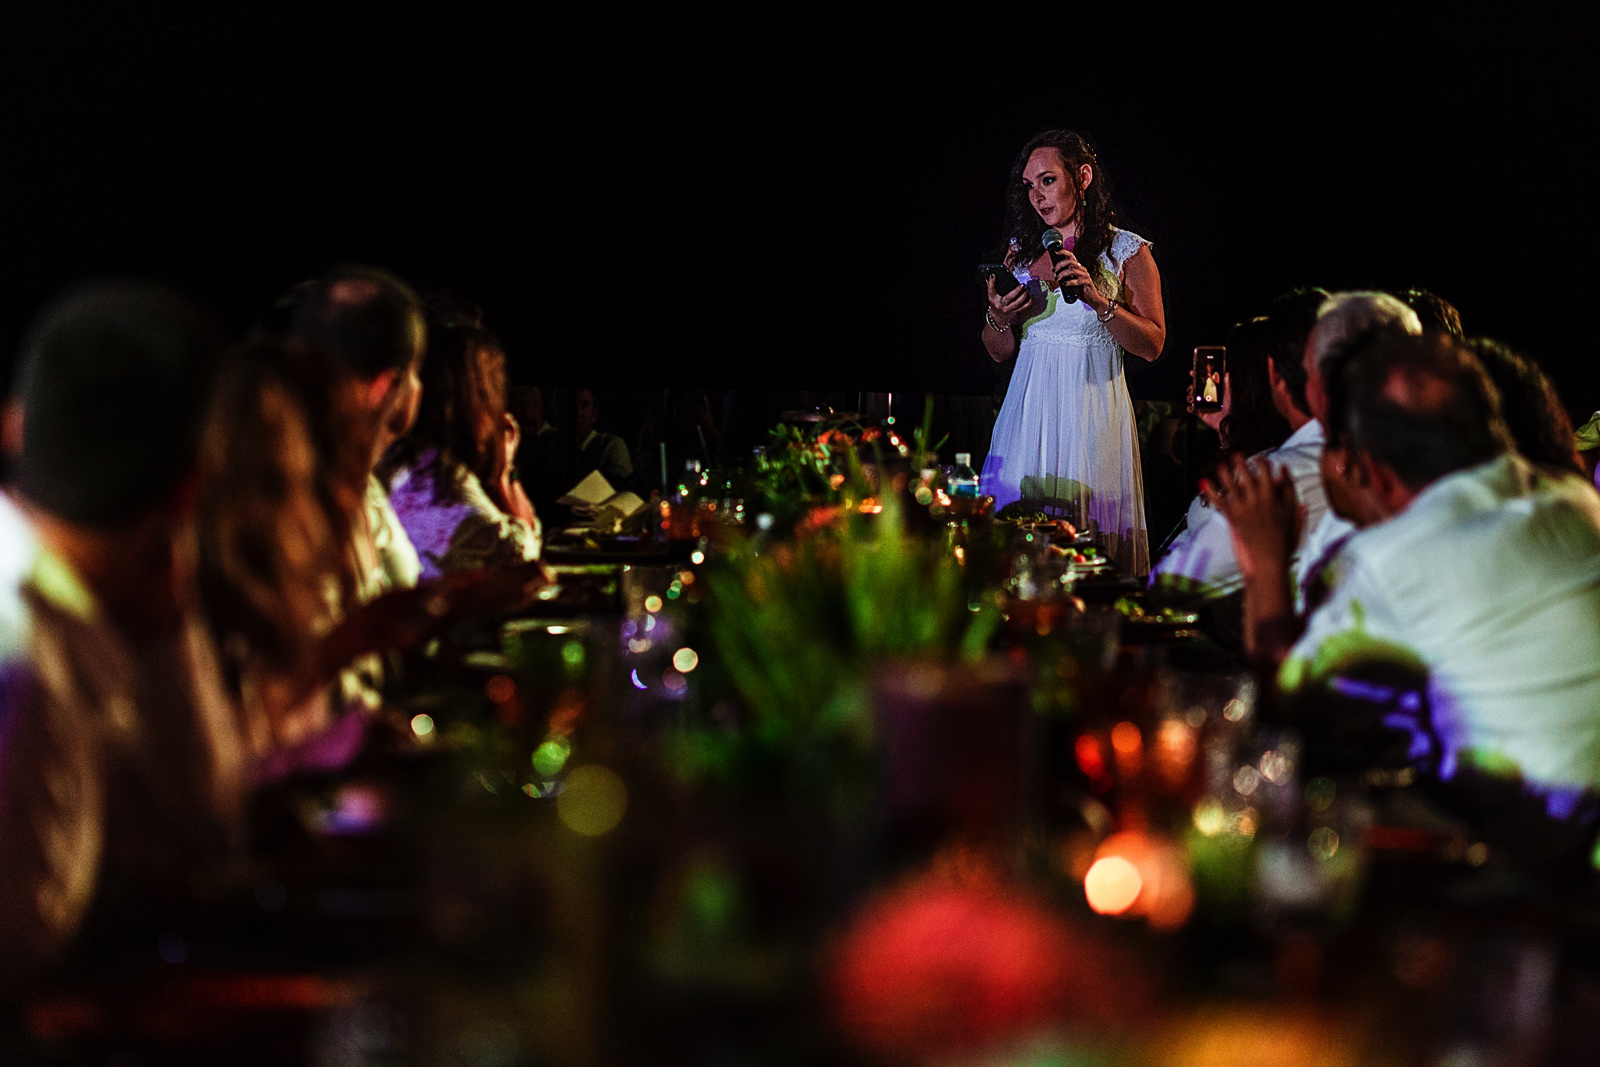 Sister of one of the grooms giving a toast speech during the dinner at Casa Karma